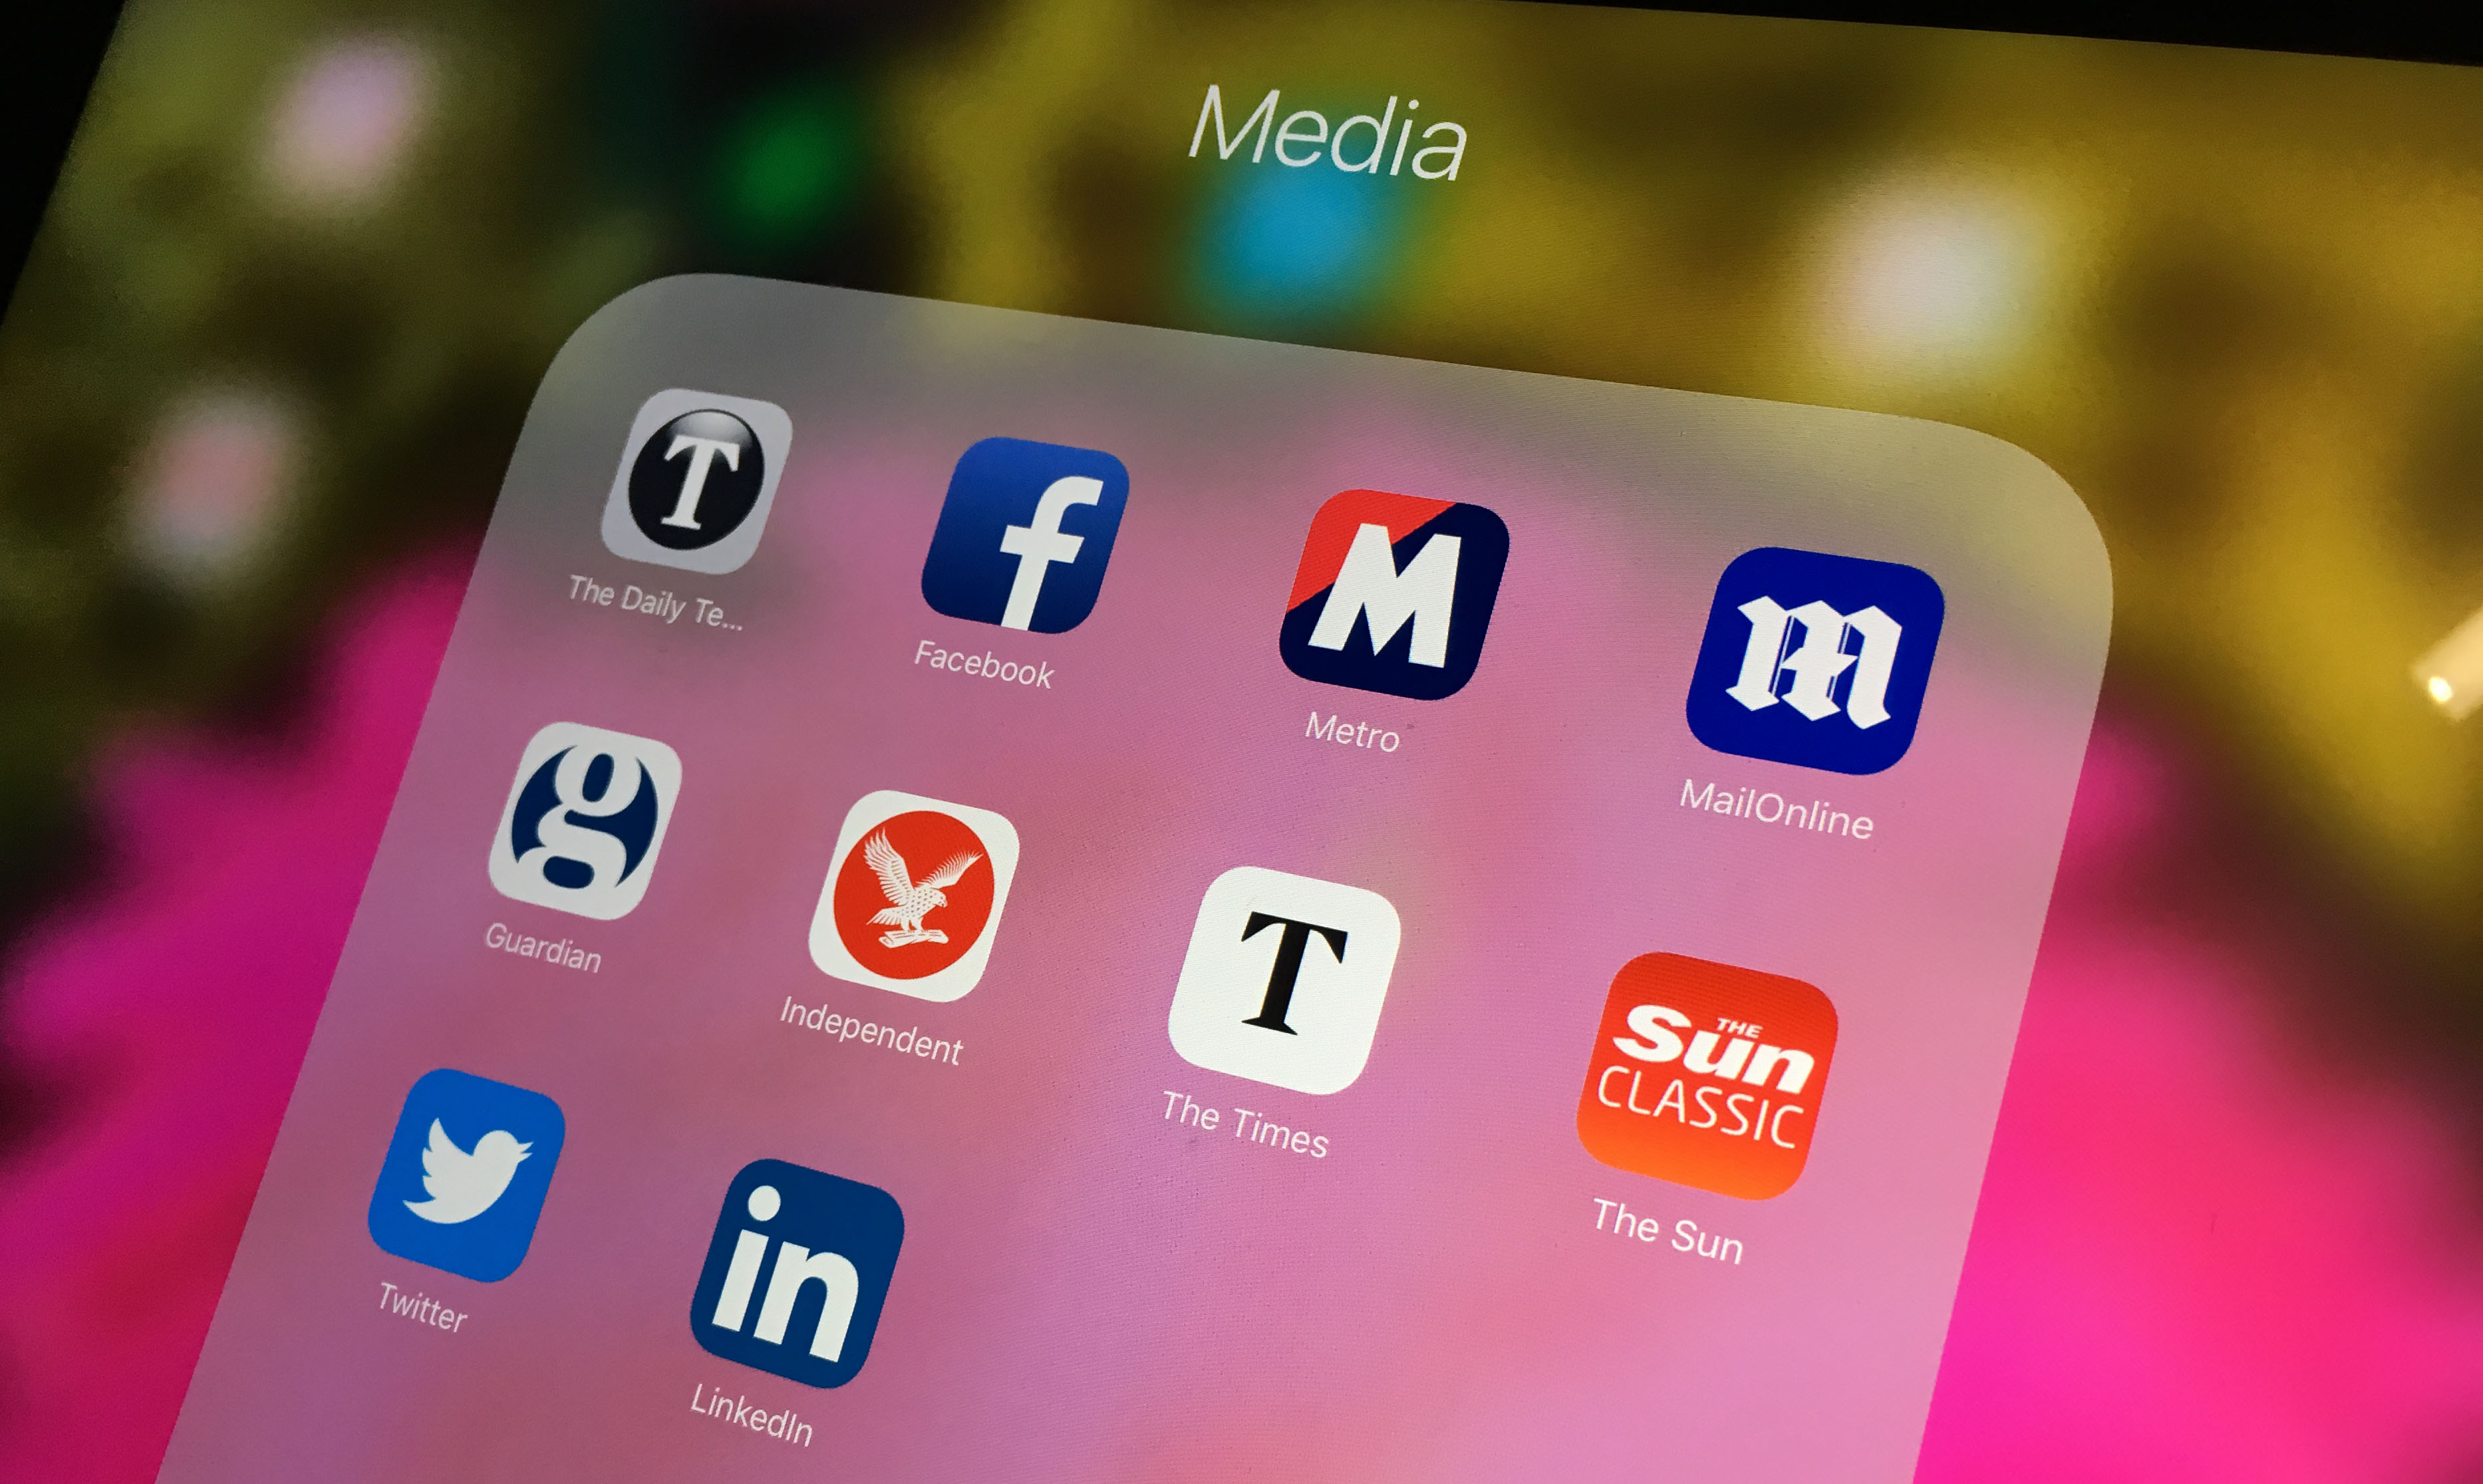 A selection of media apps on a smartphone